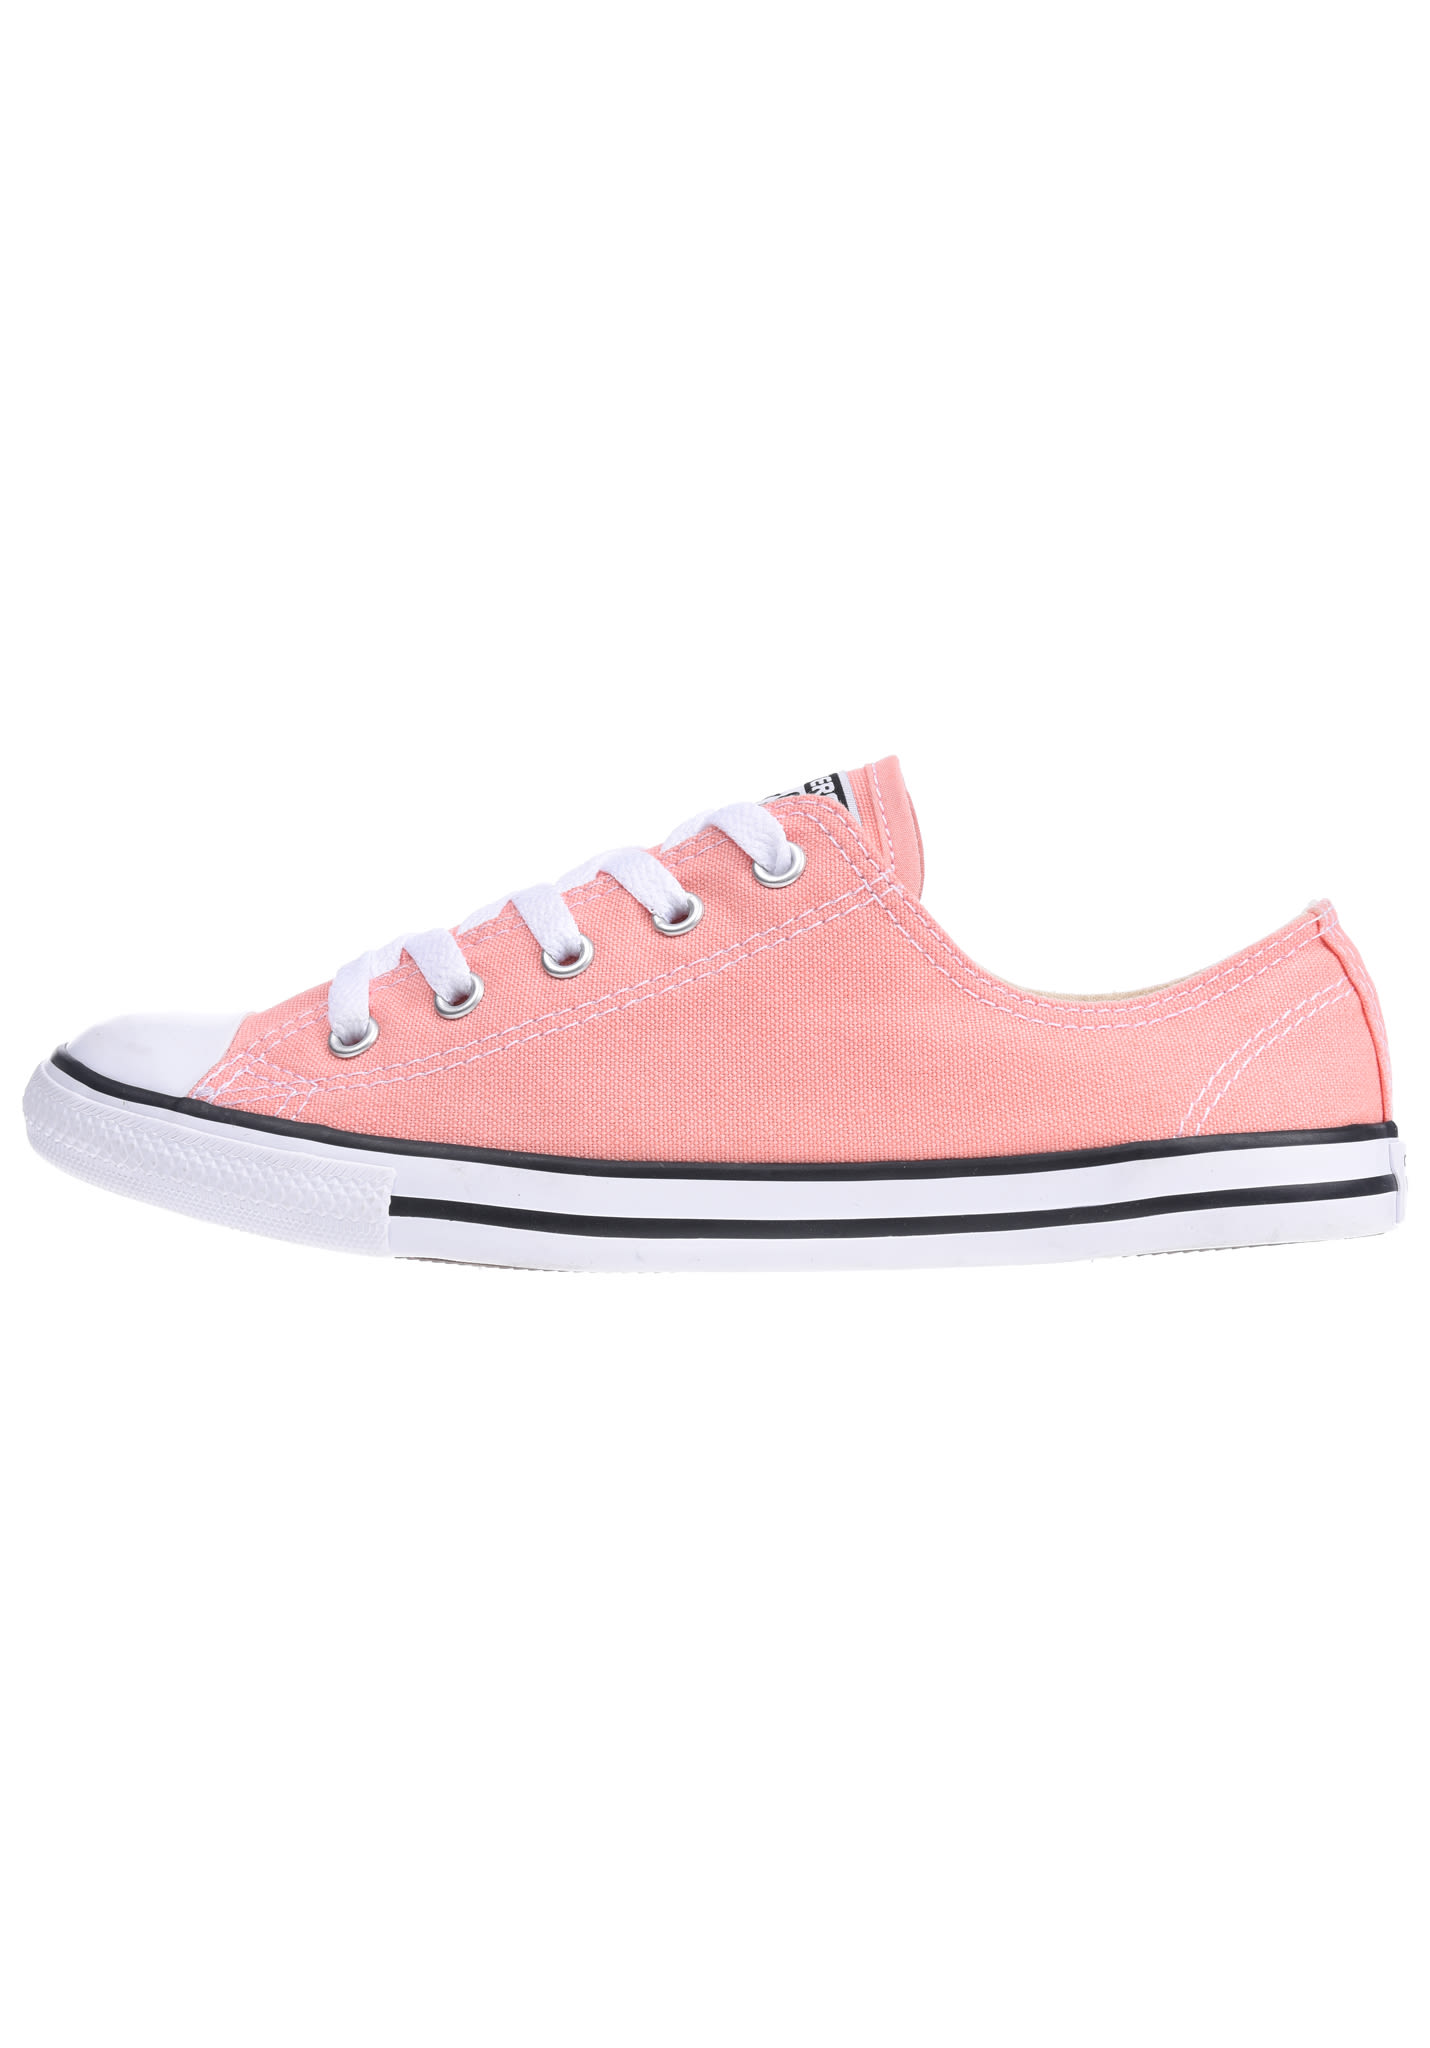 8c814cefdaa Converse Chuck Taylor All Star Dainty OX - Sneakers for Women - Pink -  Planet Sports